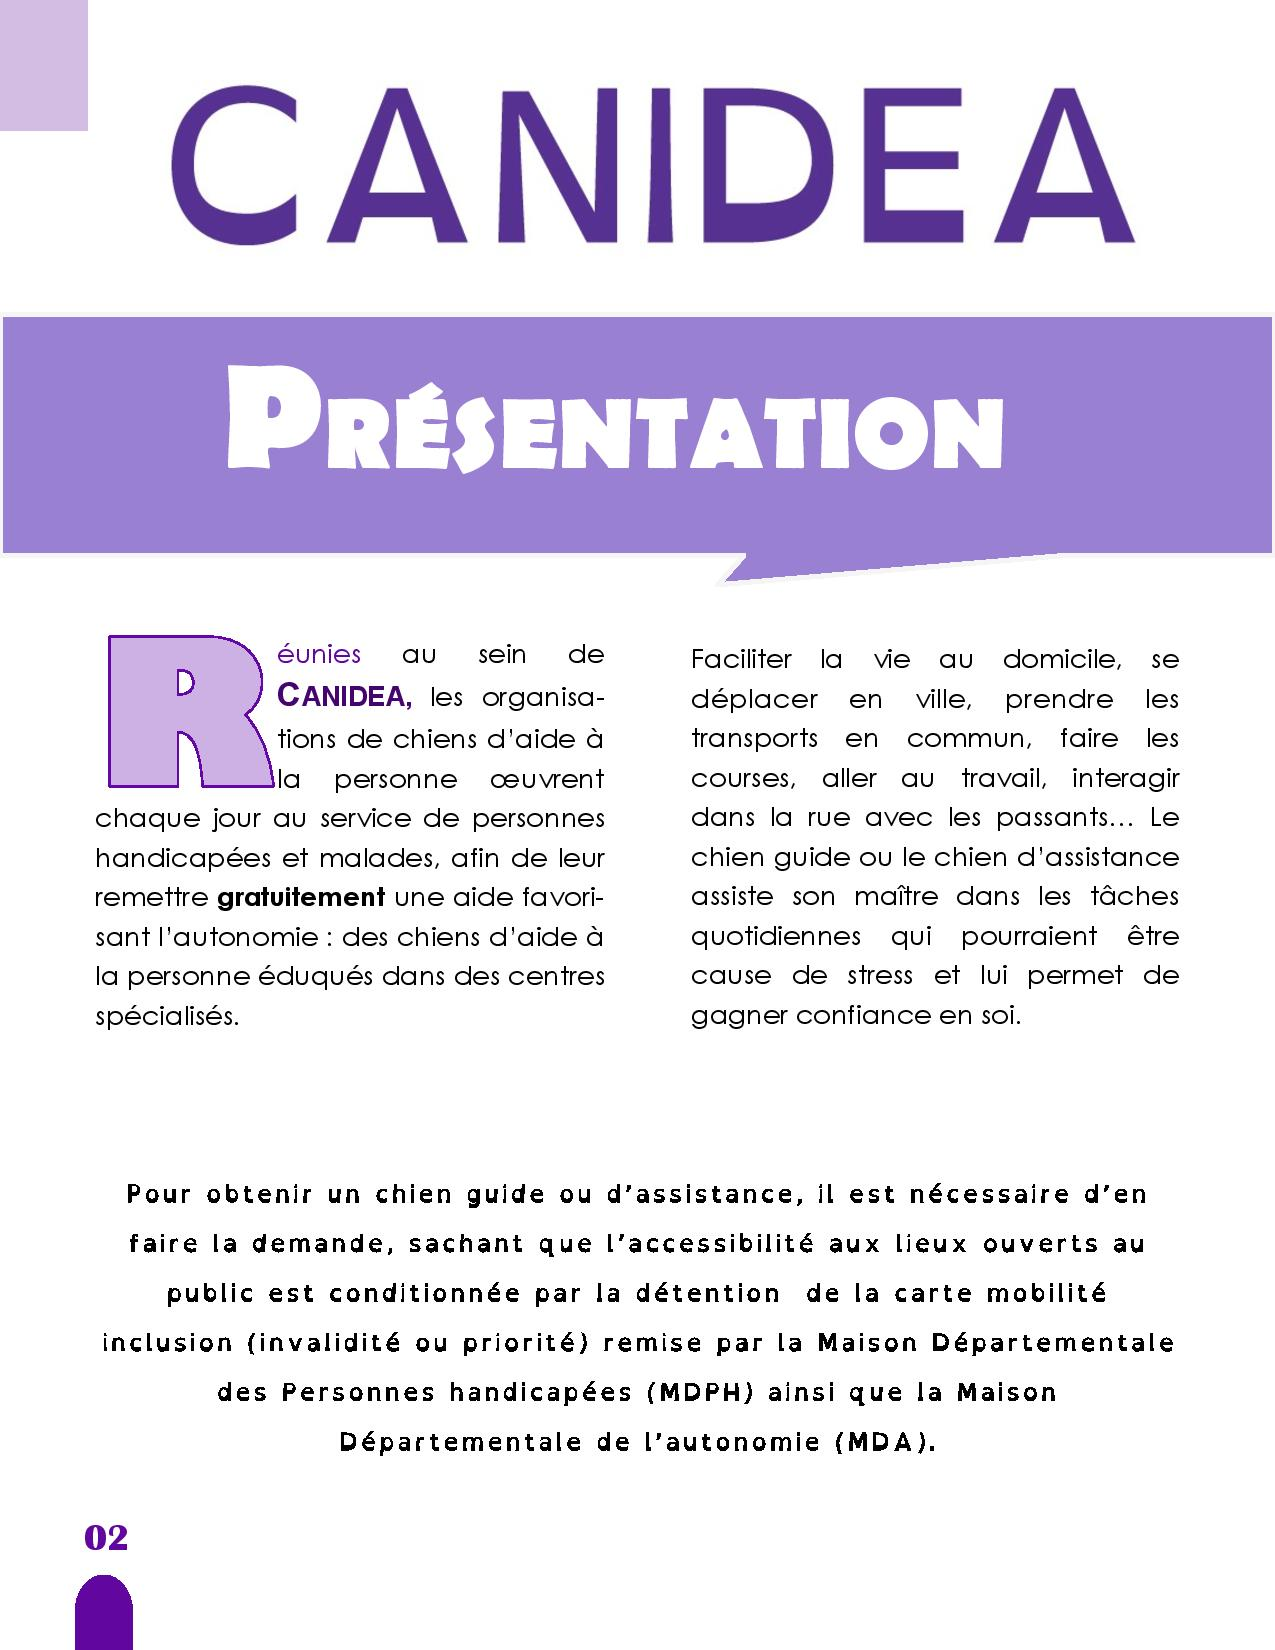 CANIDEA -Brochure chiens guides-assistance-page-002